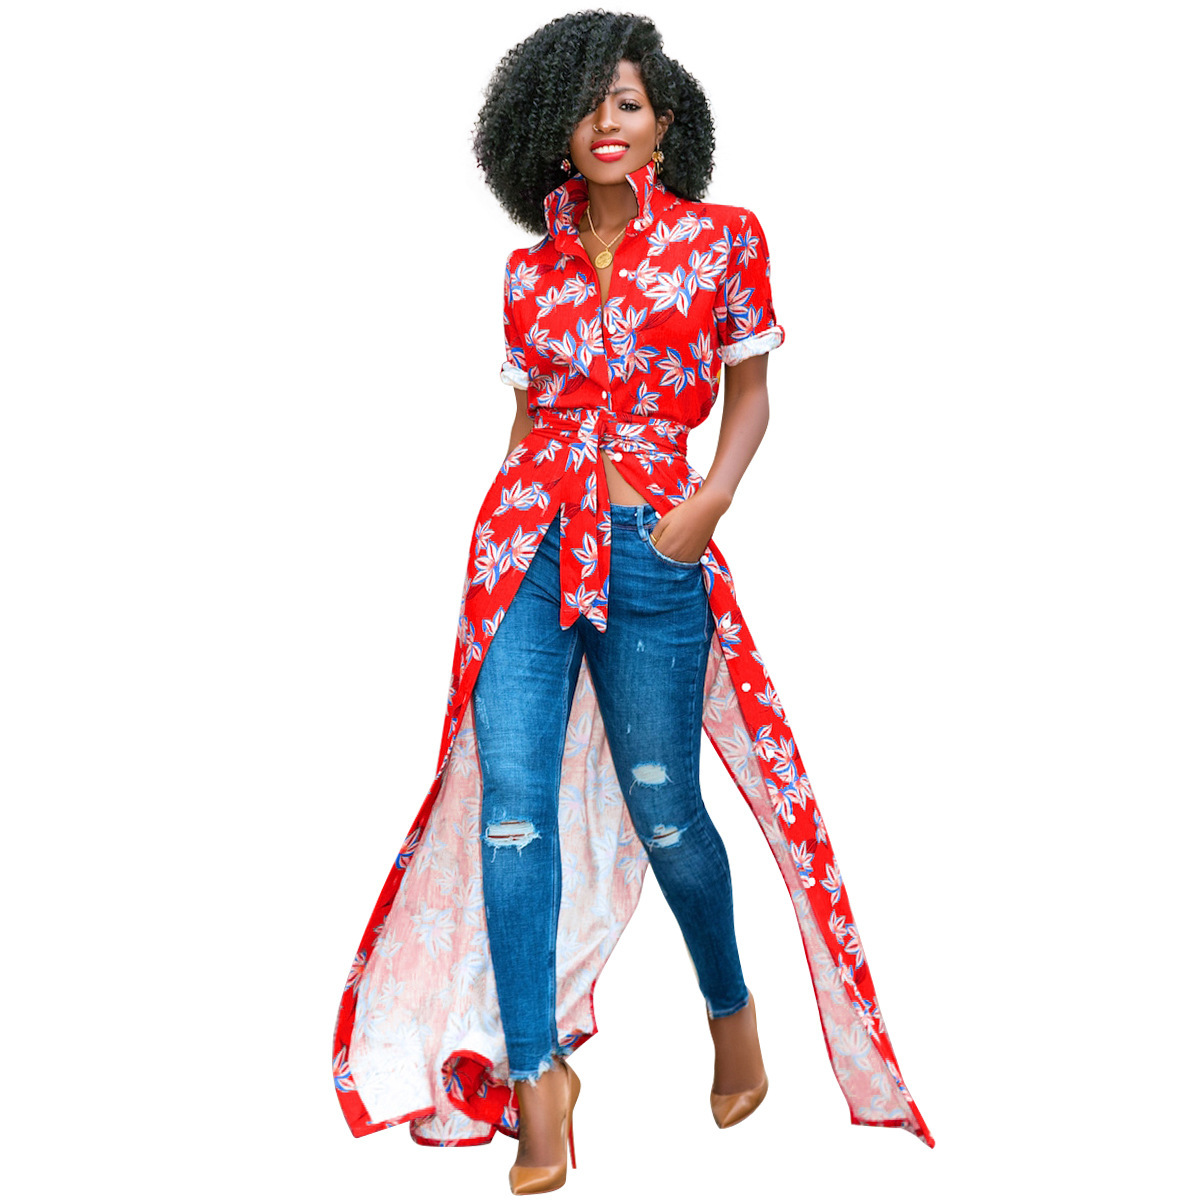 Women Floral Printed Maxi Dress Turn Down Collar Casual Boho Long Shirt Dress